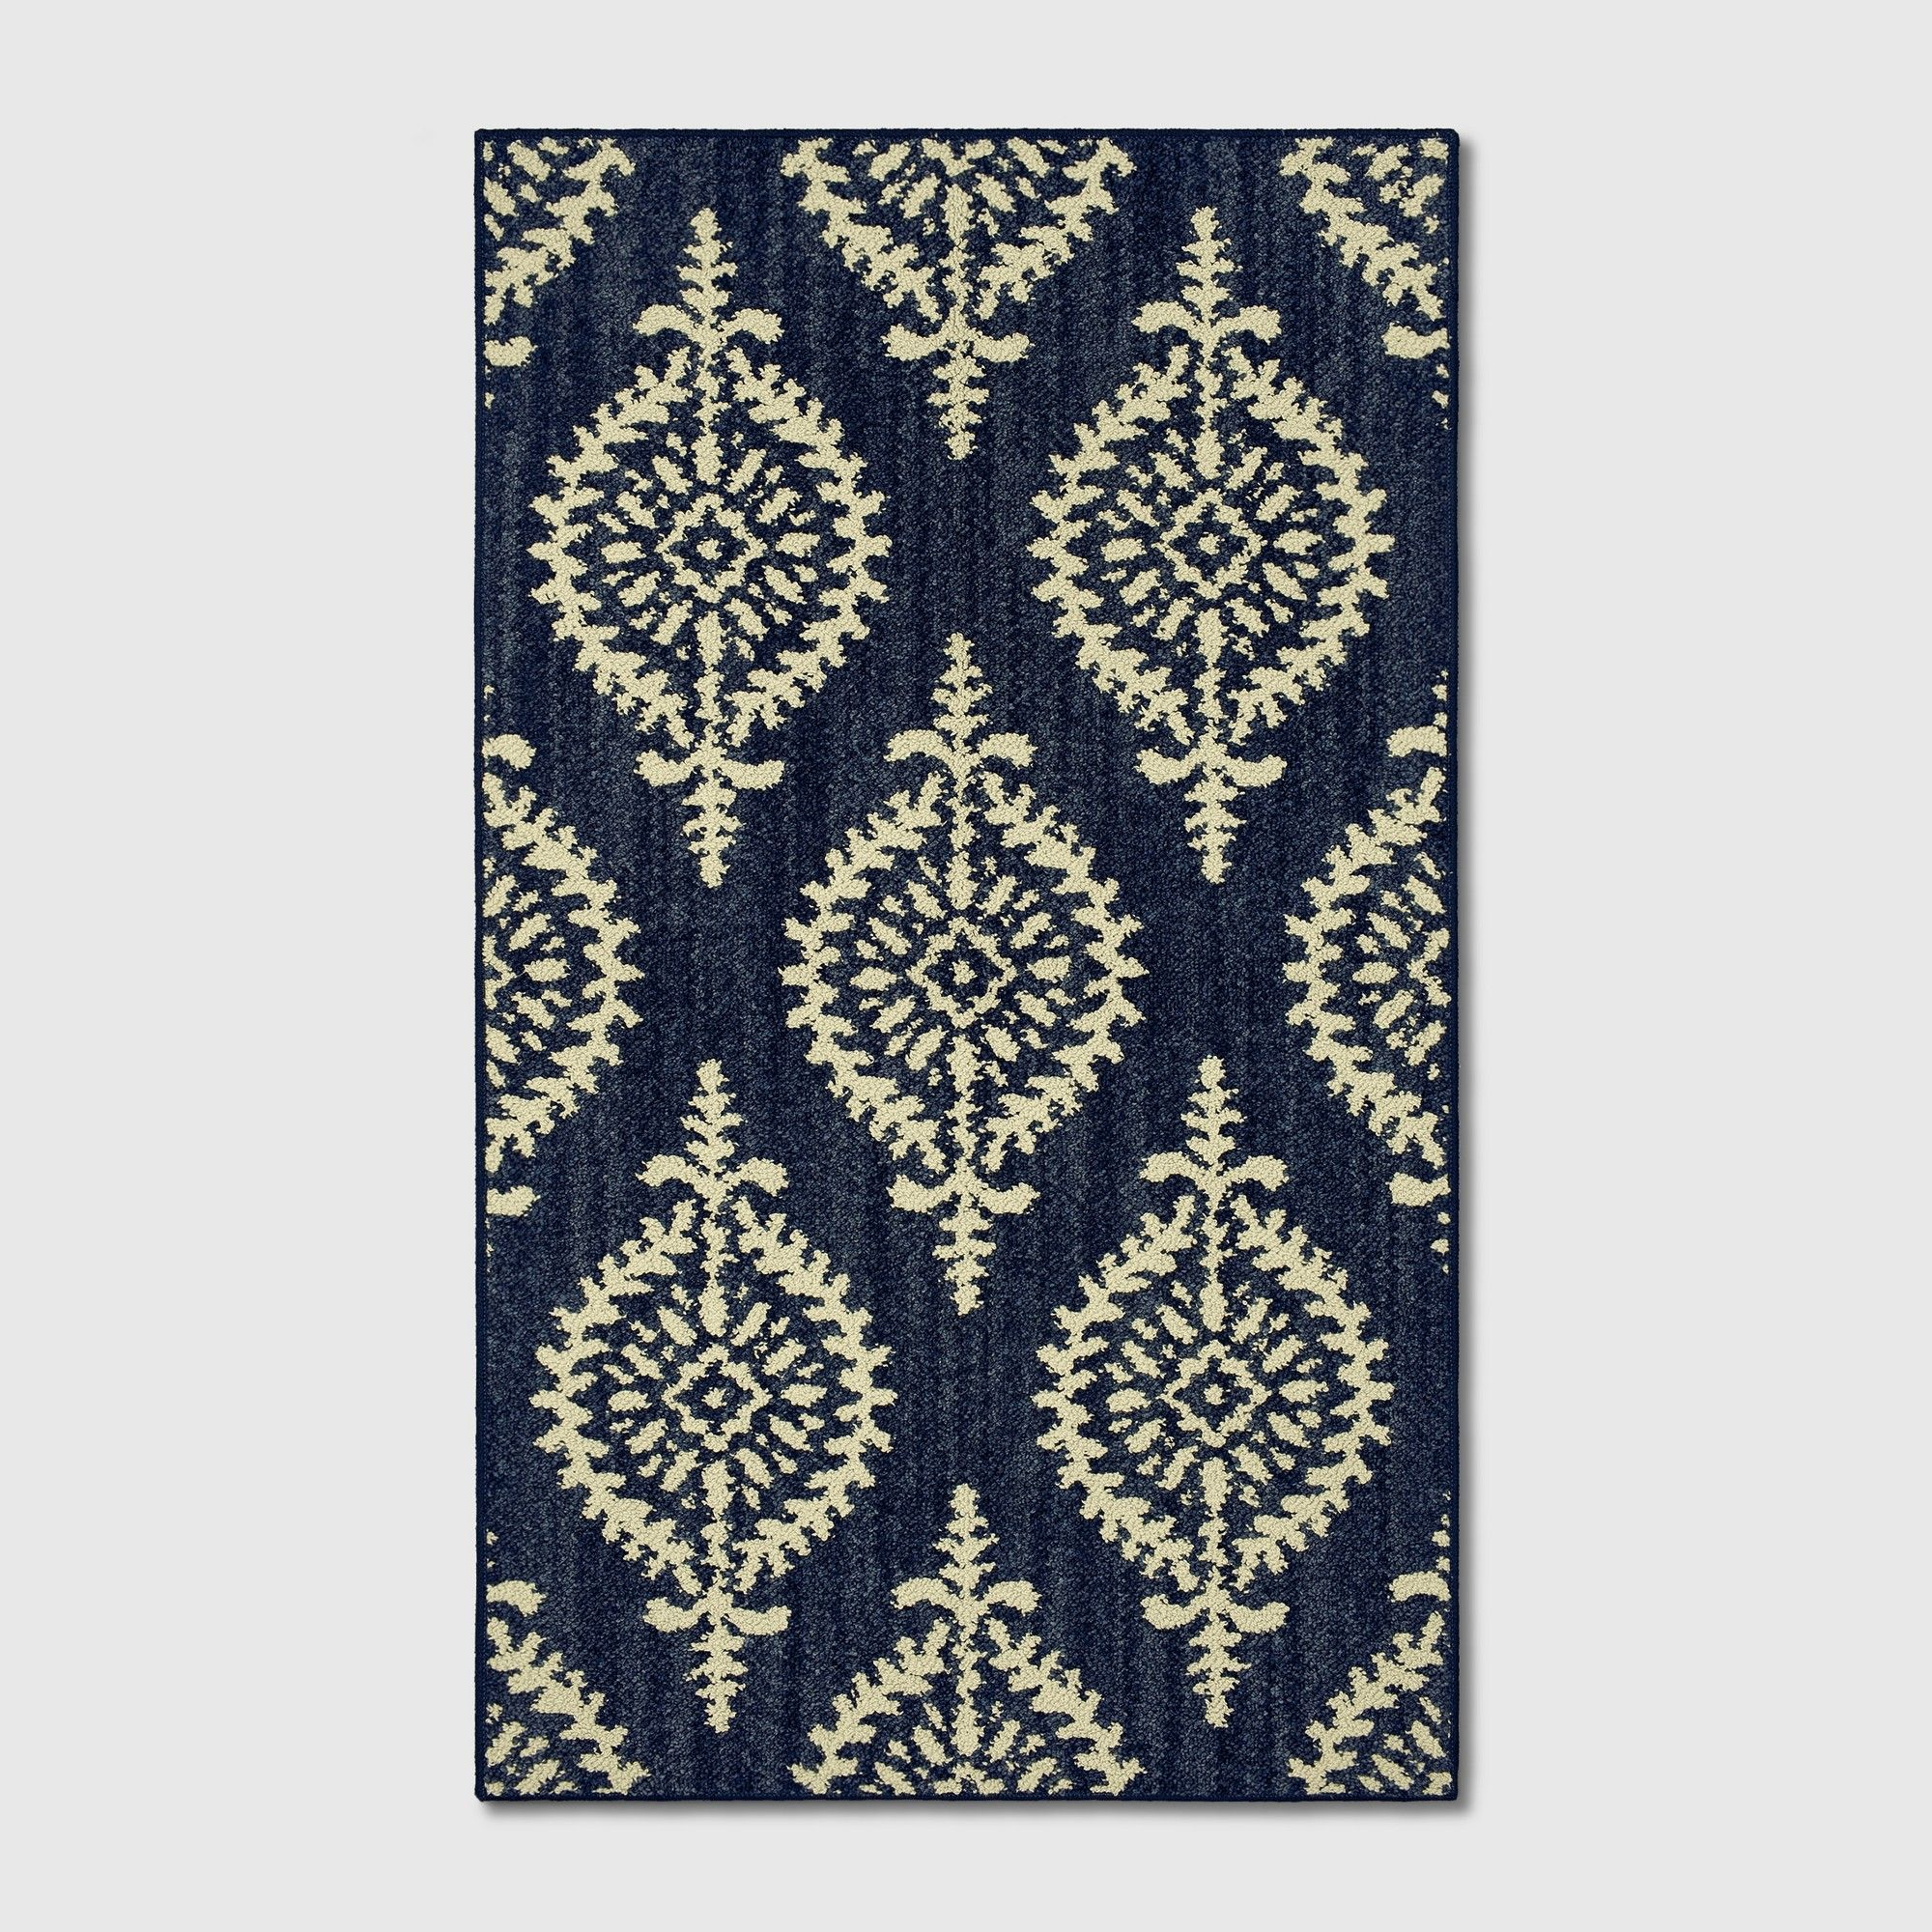 1 8 X2 10 Paisley Tufted Accent Rugs Indigo Threshold Size 1 8 X2 10 20 X34 Blue Accent Rugs Rug Material Rugs